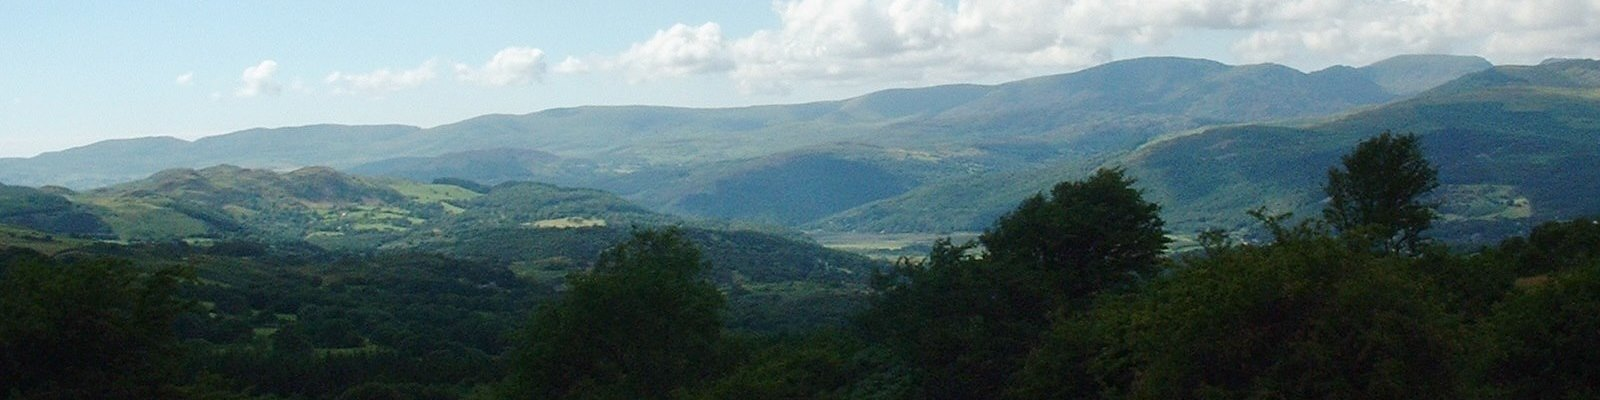 Mountains above Corris